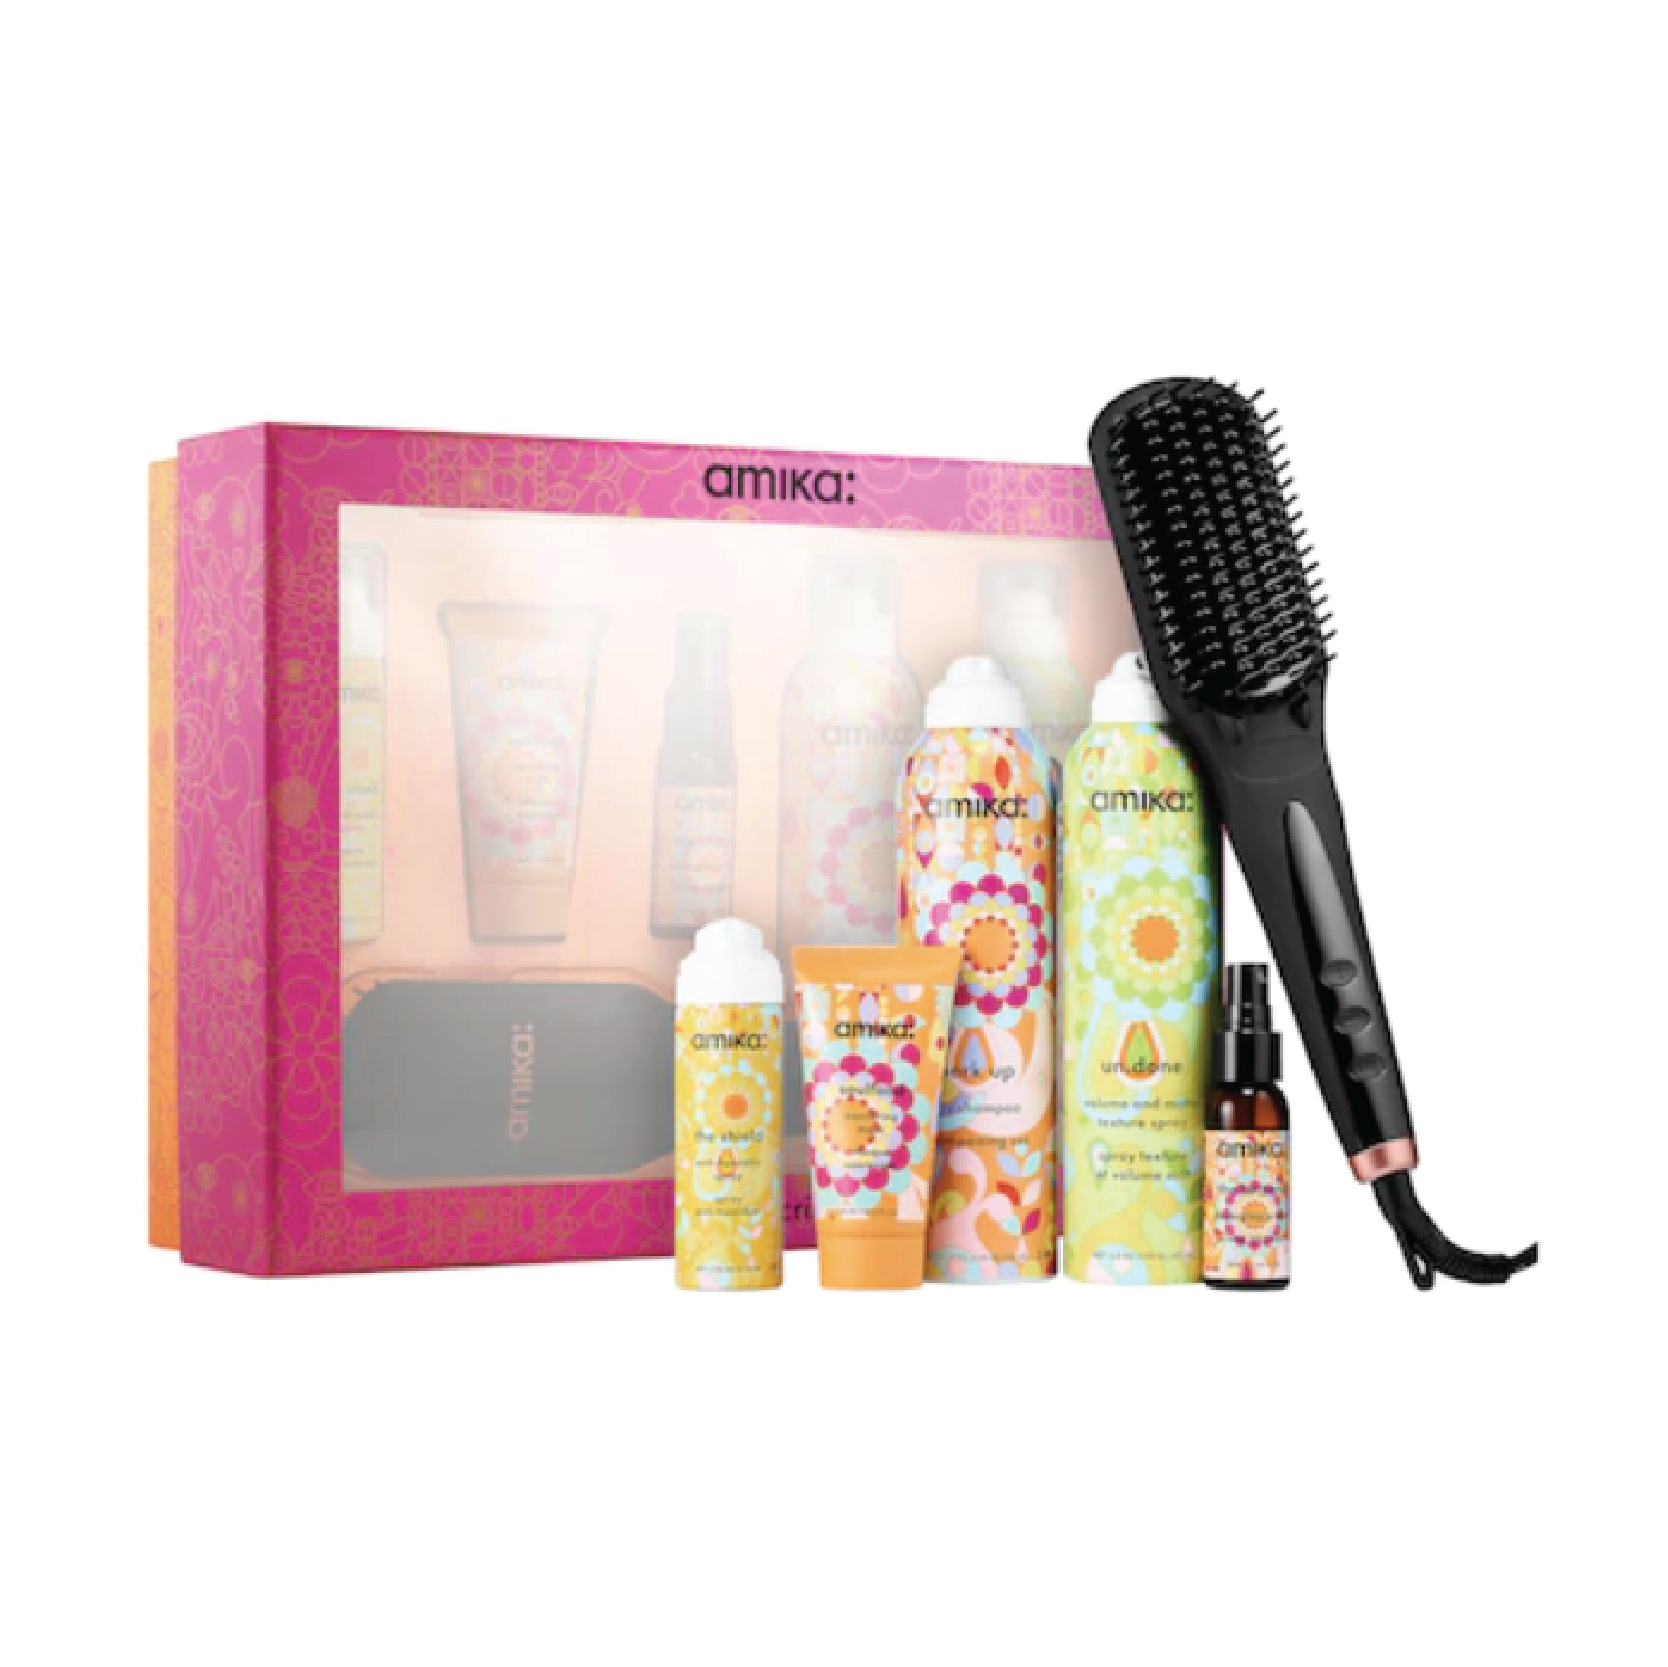 Amika Smooth Criminal Polished Perfection Gift Set - $120 at SephoraAmika is one of my favorite hair care brands. Heat brushes are the biggest trend right now and this pack comes with some of their best selling products.